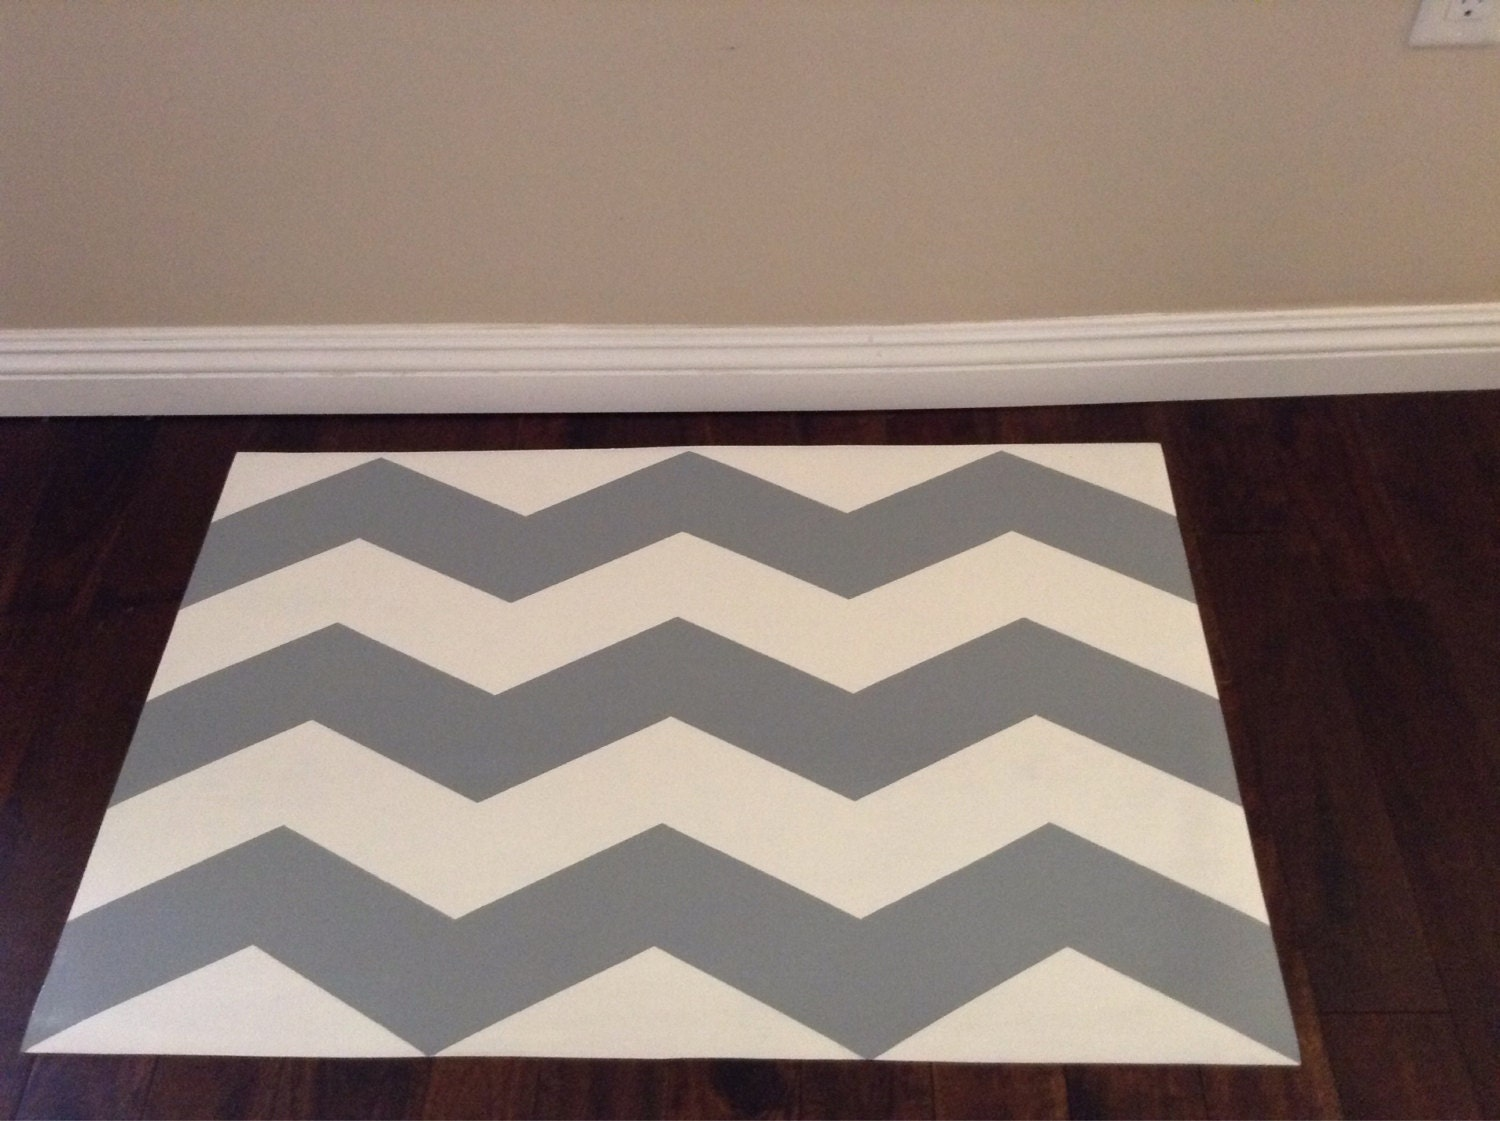 Floor mats kenya - Hand Painted Vinyl Floor Mat Grey And White Chevron